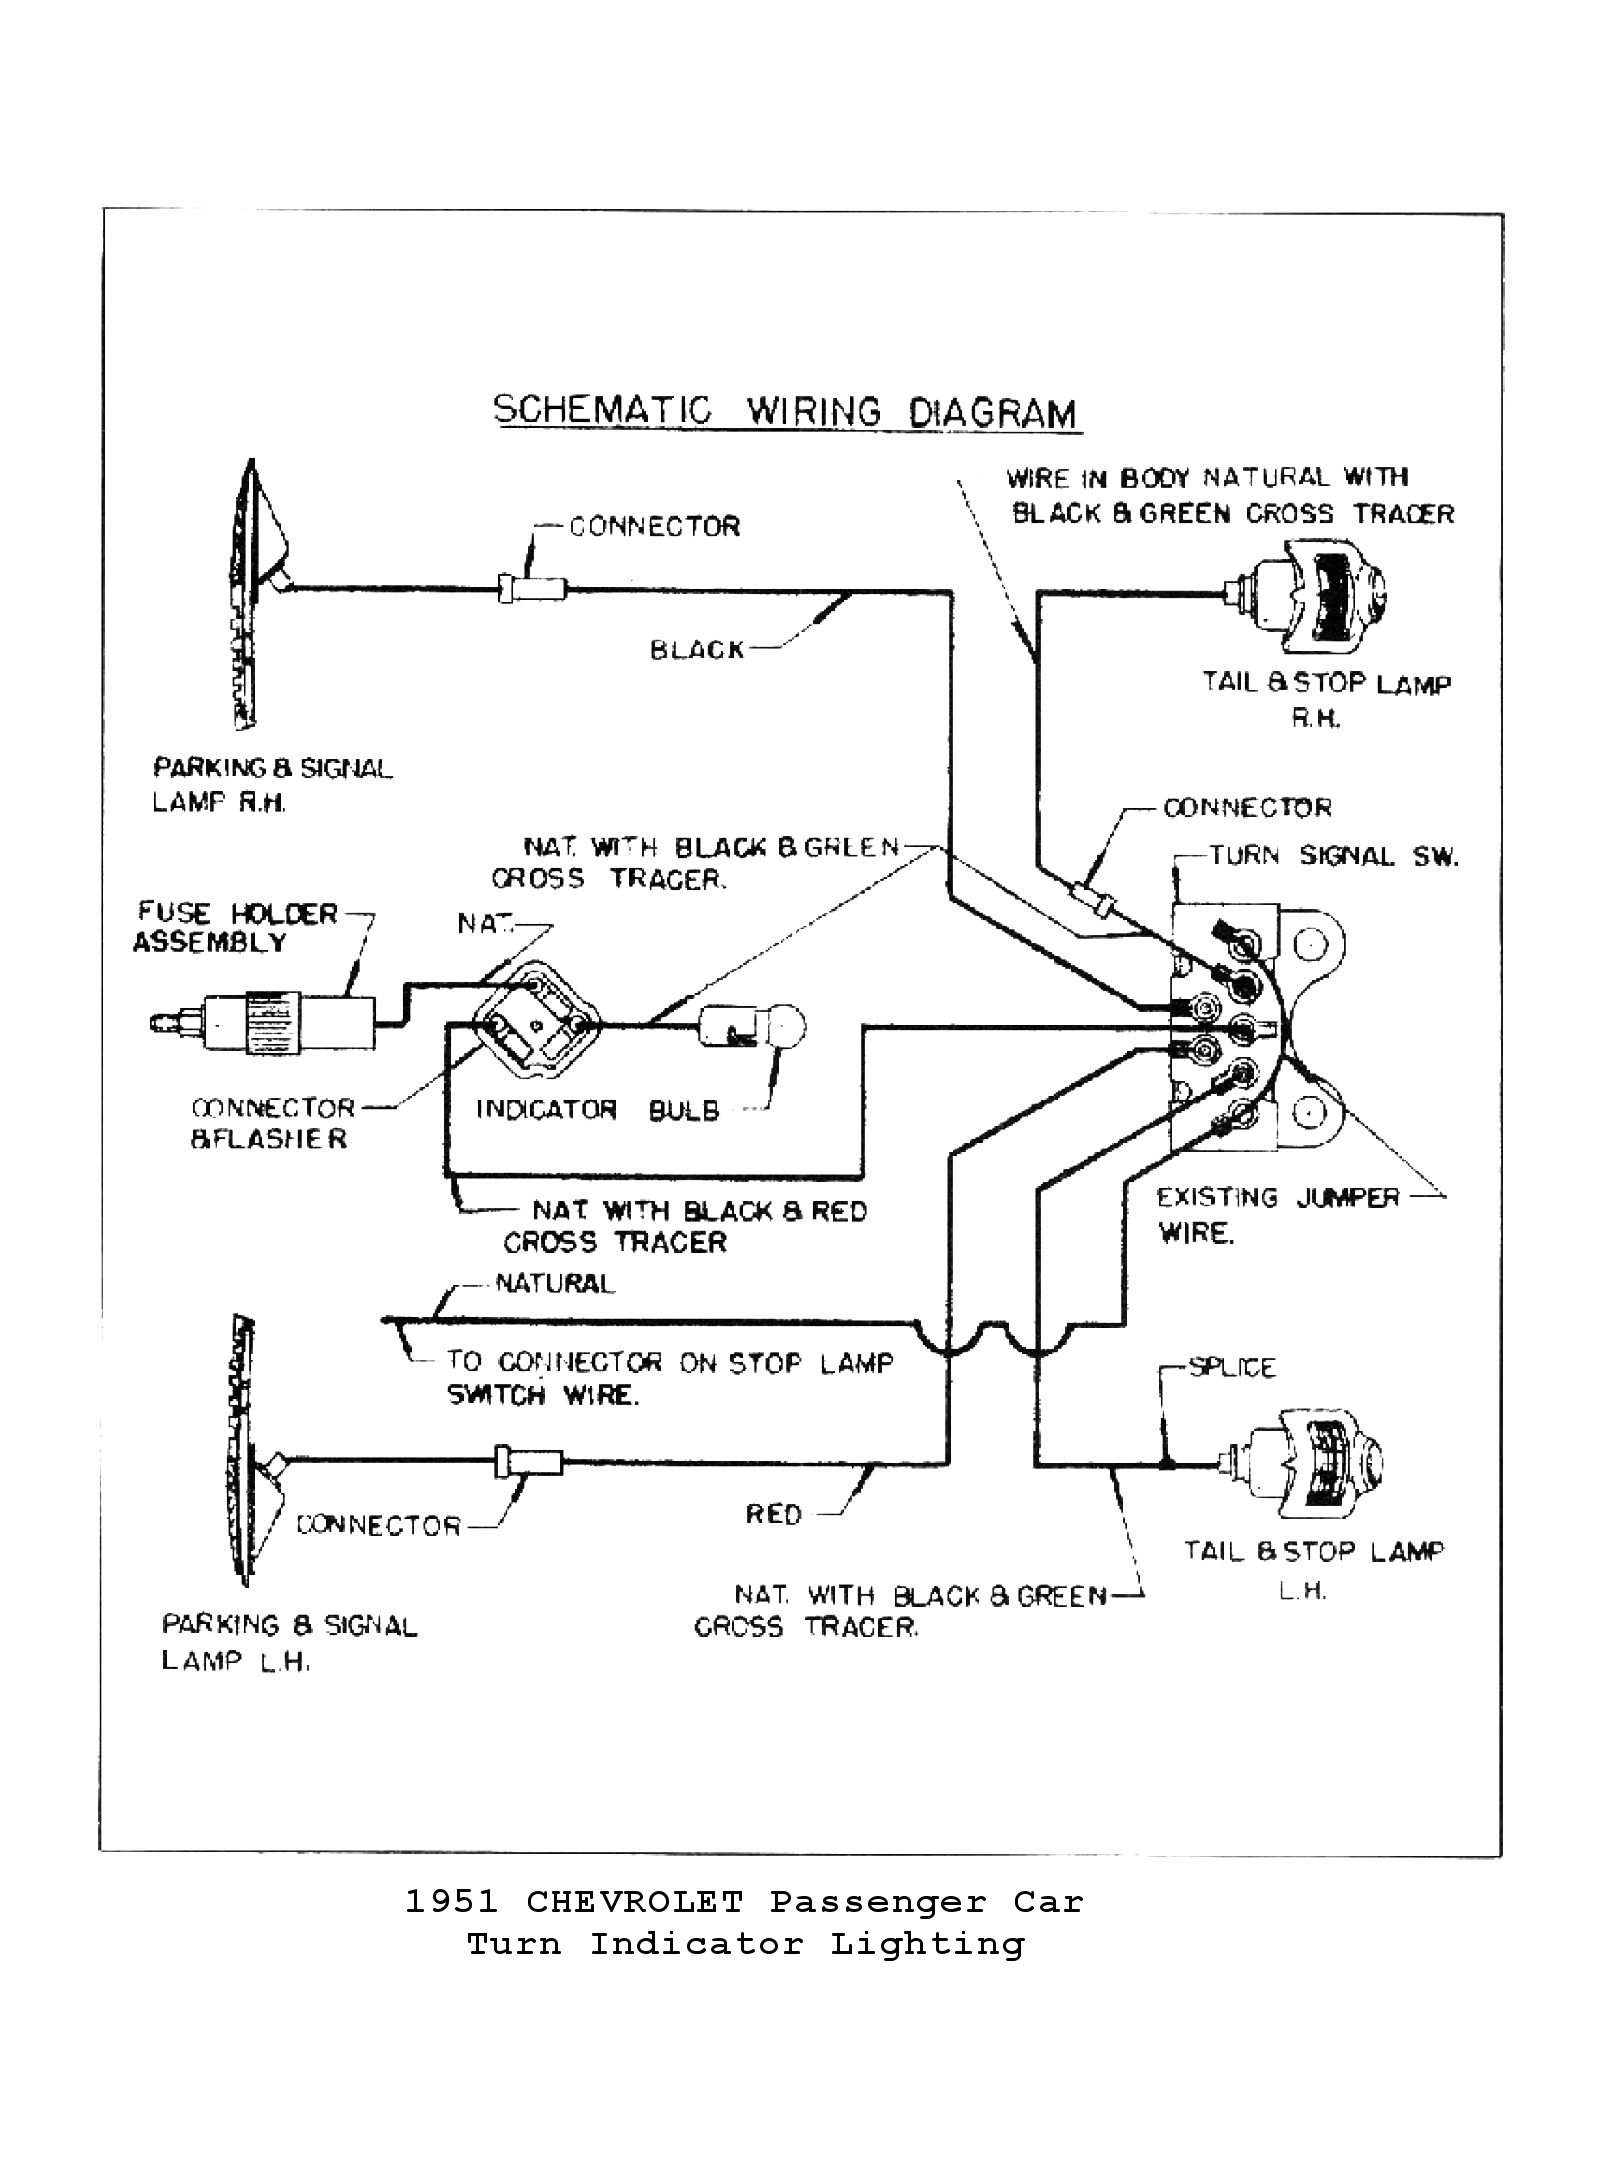 chevy truck headlight switch wiring diagram free picture 6 7chevy wiring diagrams rh chevy oldcarmanualproject com ford headlight switch wiring diagram gm headlight switch wiring diagram